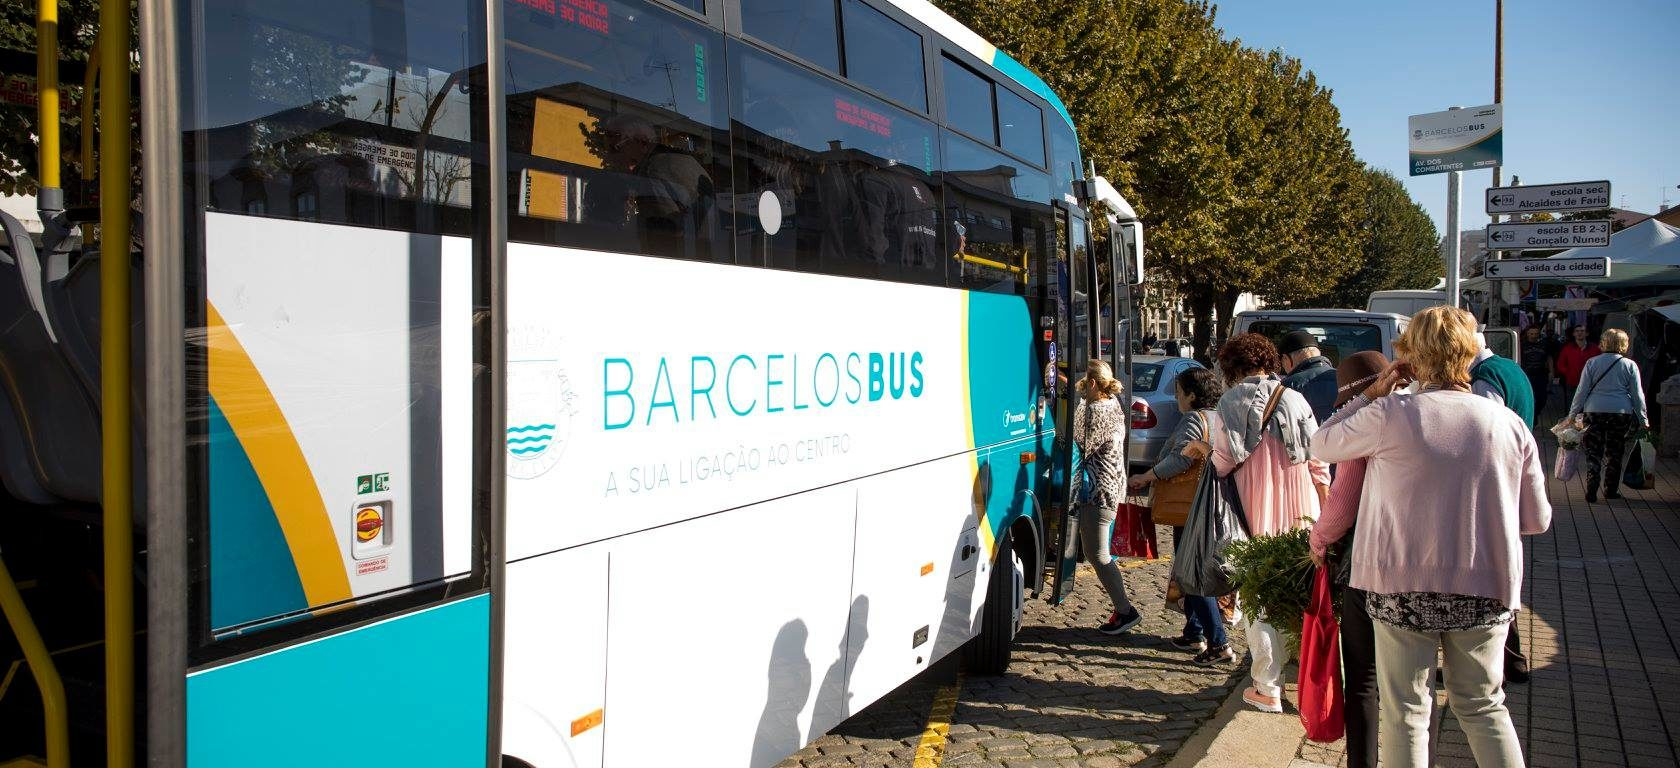 transdev-ensures-the-free-transport-of-users-to-the-vaccination-center-in-barcelos-portugal